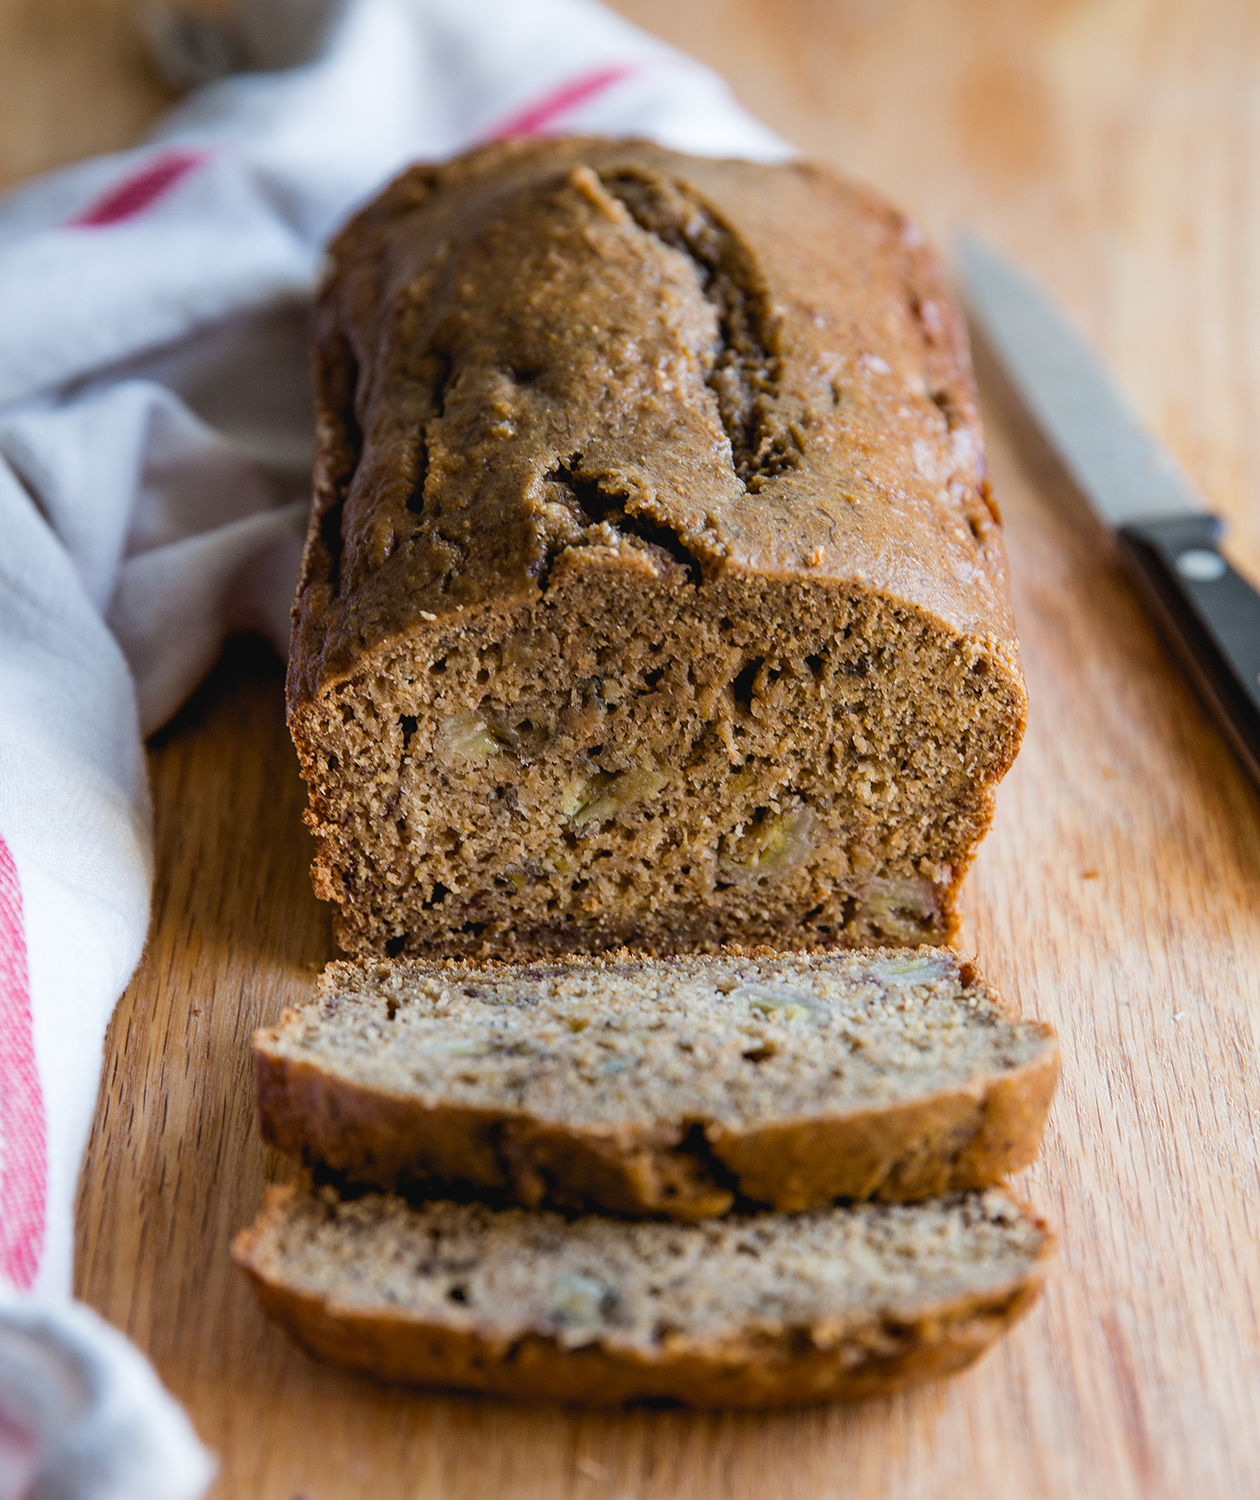 Banana Bread as one of our healthy breakfast ideas